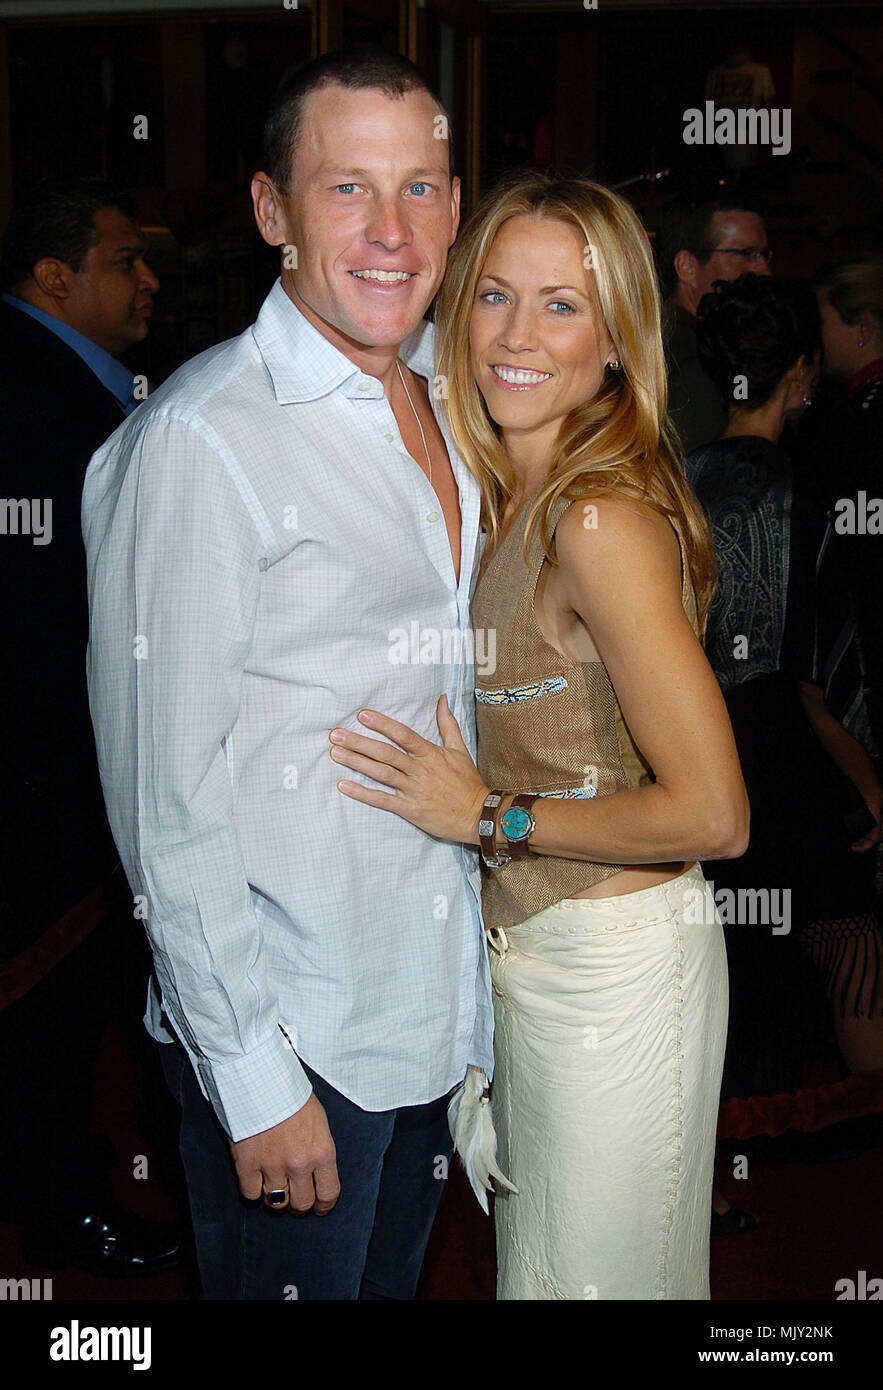 Lance armstrong and sheryl crow arriving at the meet the fockers lance armstrong and sheryl crow arriving at the meet the fockers premiere at the universal amphitheatre in los angeles december 16 2004 m4hsunfo